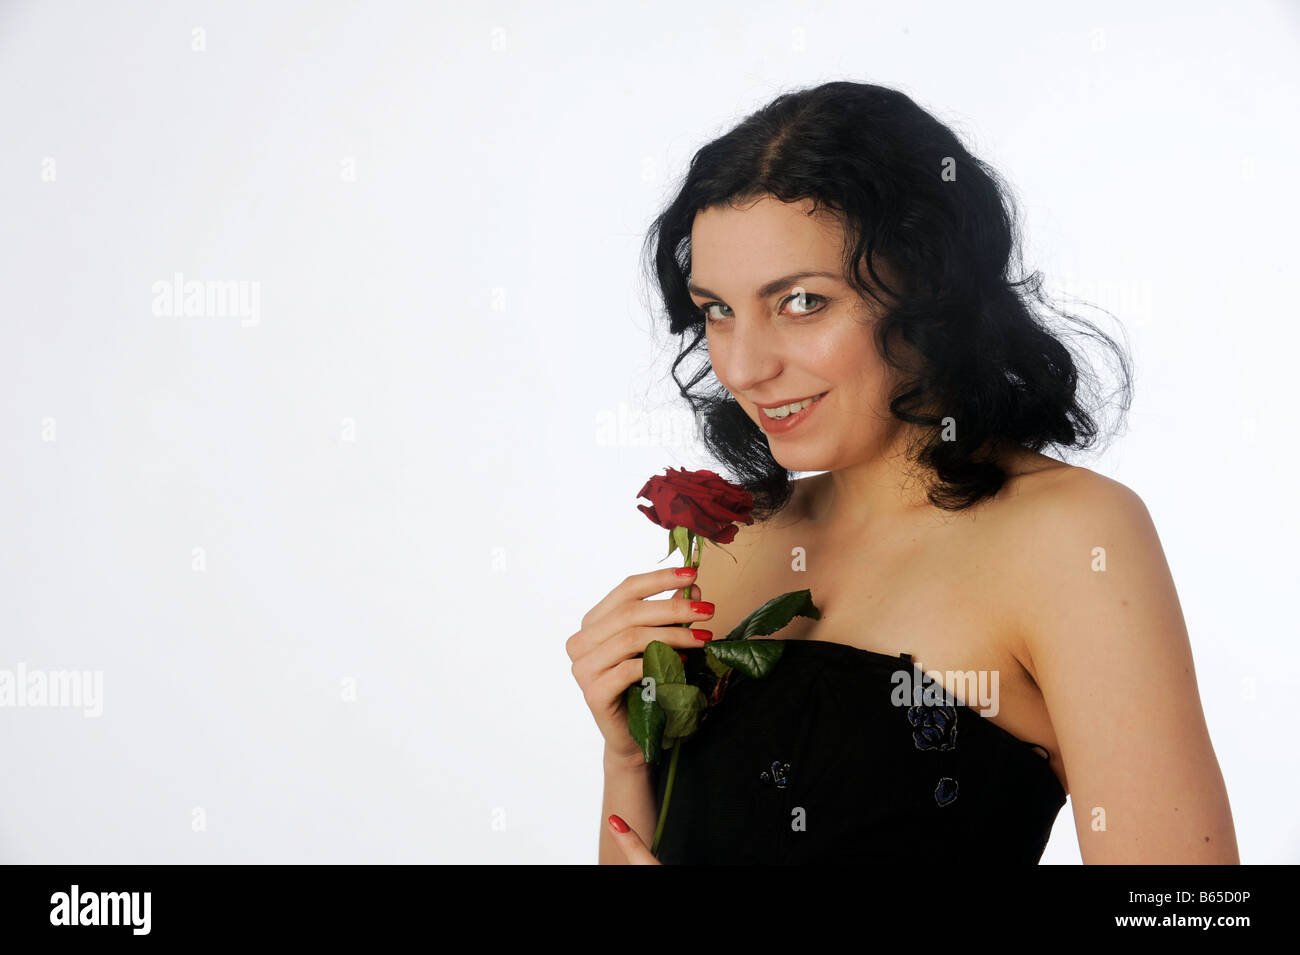 black single women in red bluff Red bluff online dating for red bluff singles 1500000 daily active members.